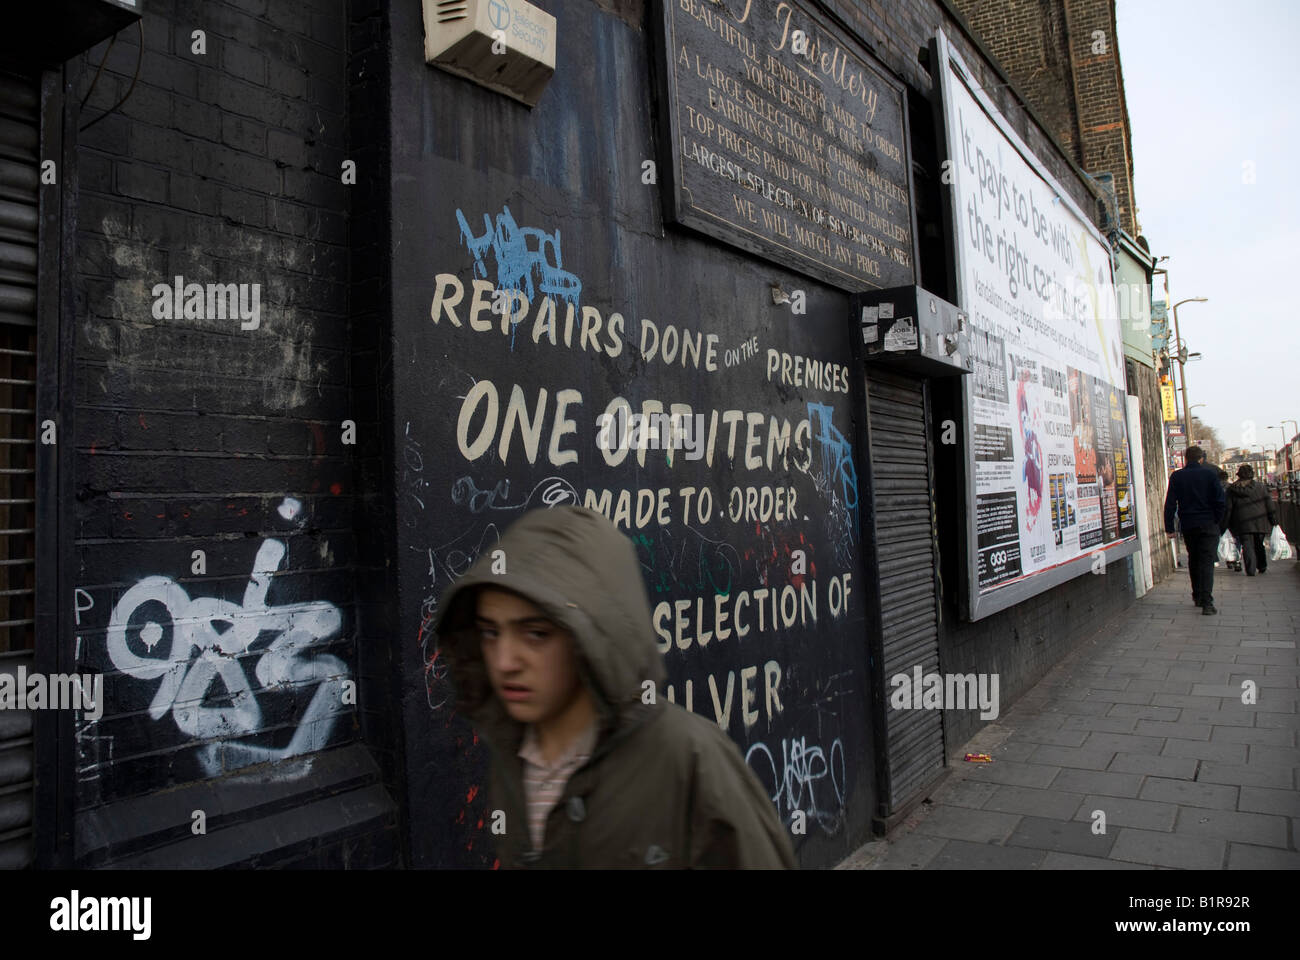 A young boy passes thorough a run down inner city area of Dalston Hackney - Stock Image